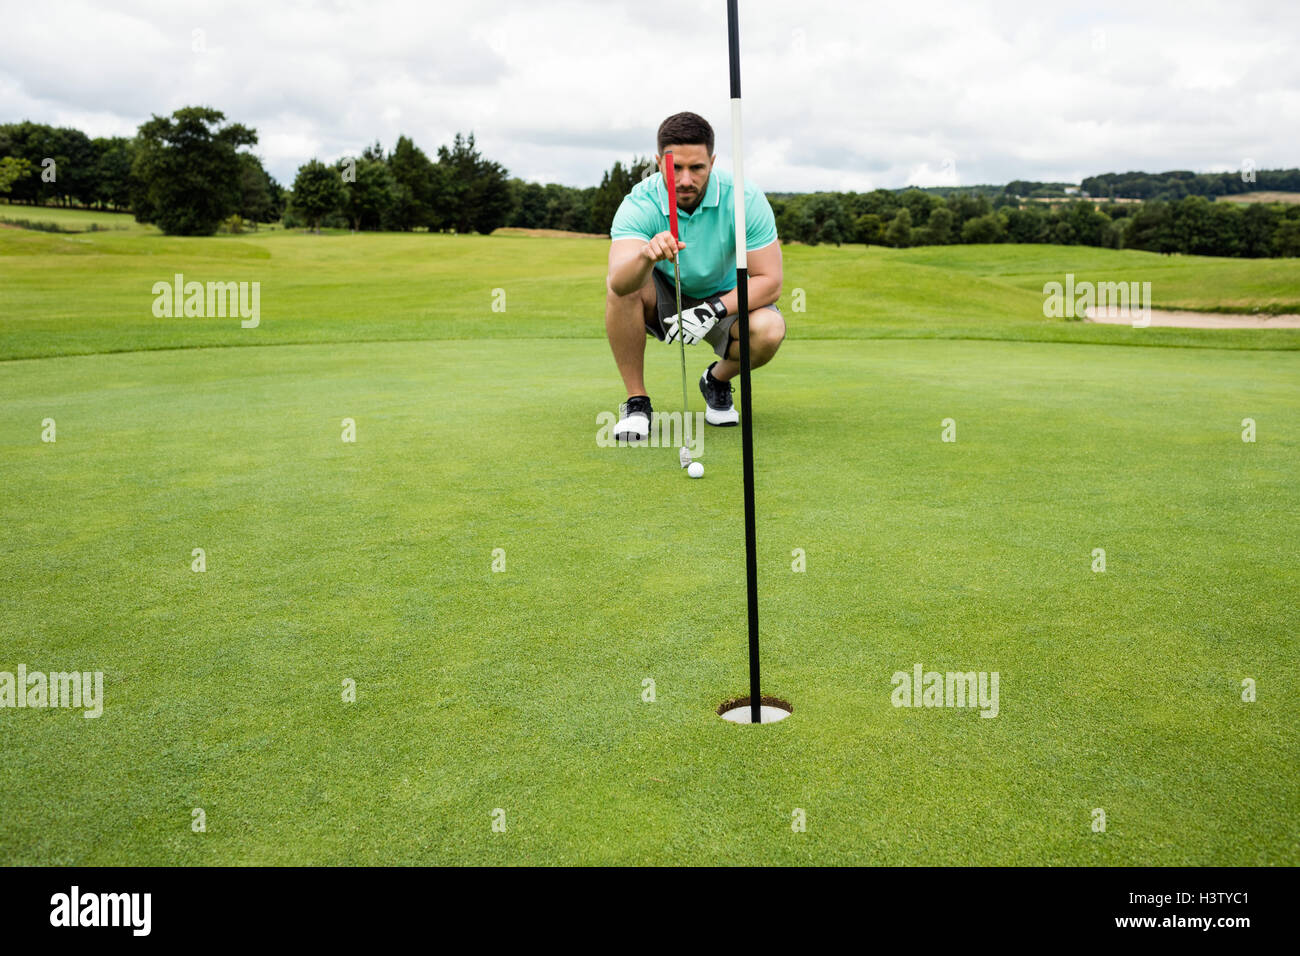 Man squatting to line up his putt - Stock Image